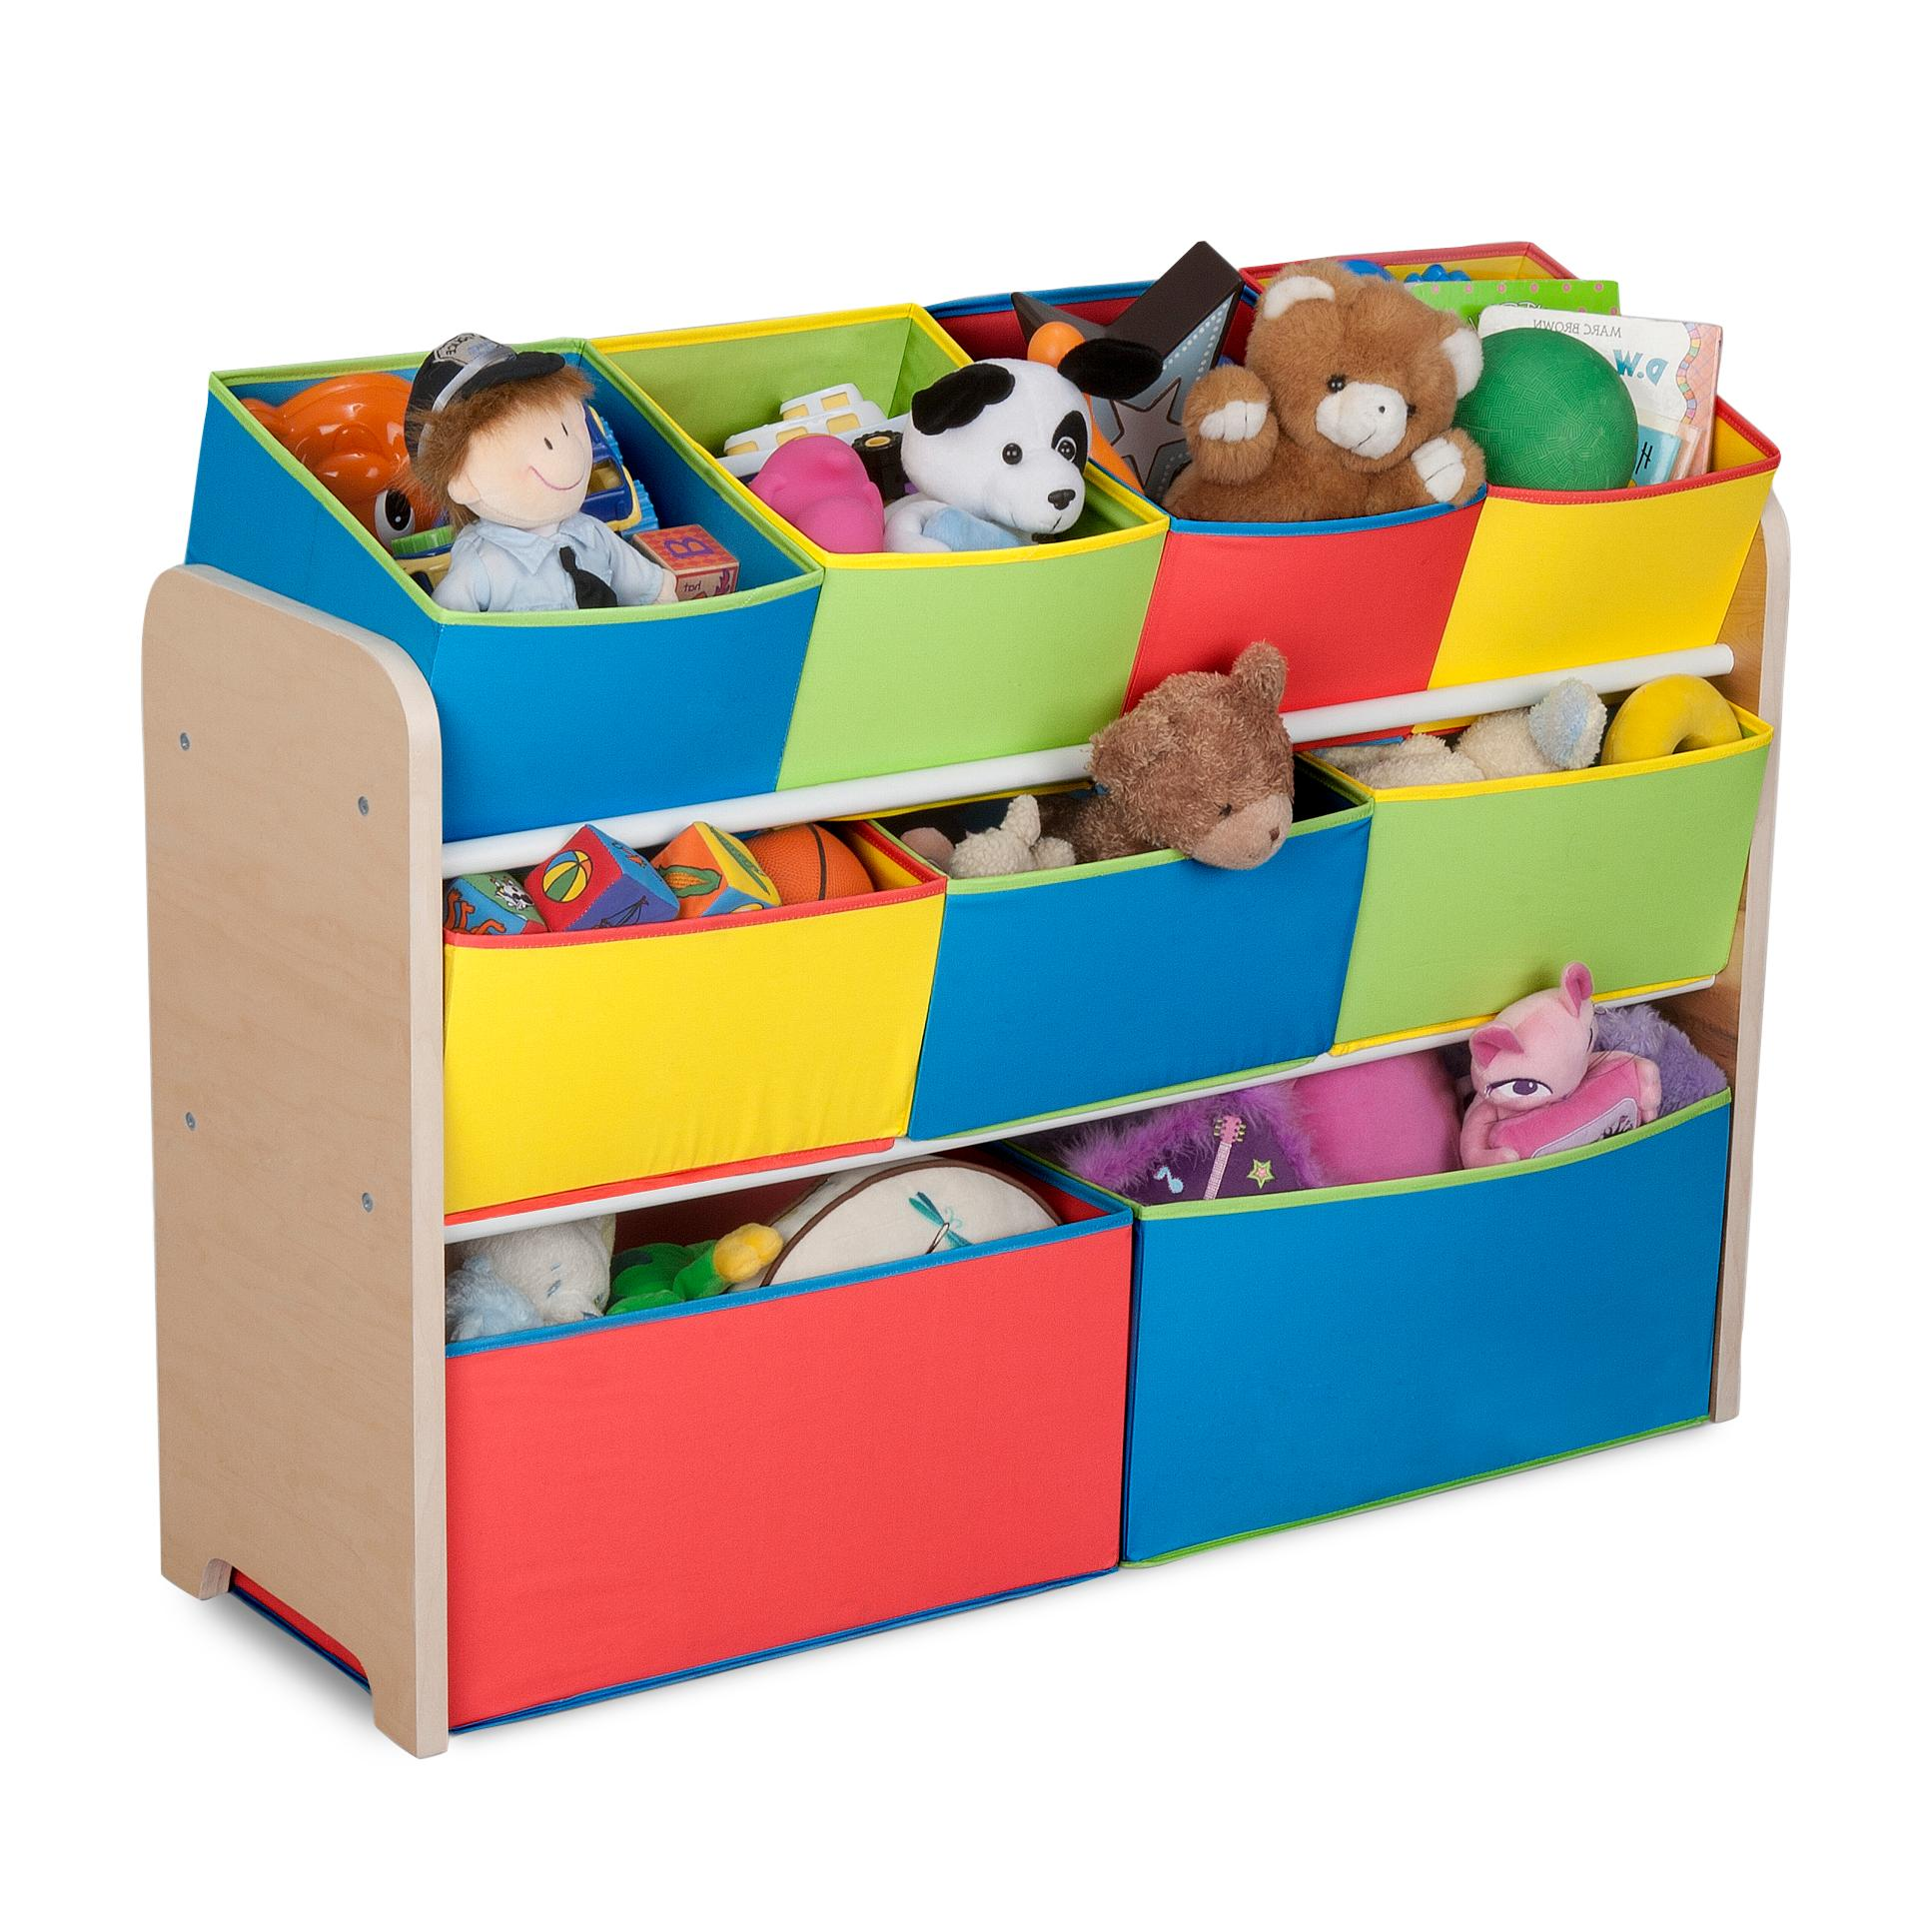 Amazon.com : Delta Children Deluxe Multi-Bin Toy Organizer with Storage Bins, Natural/Primary